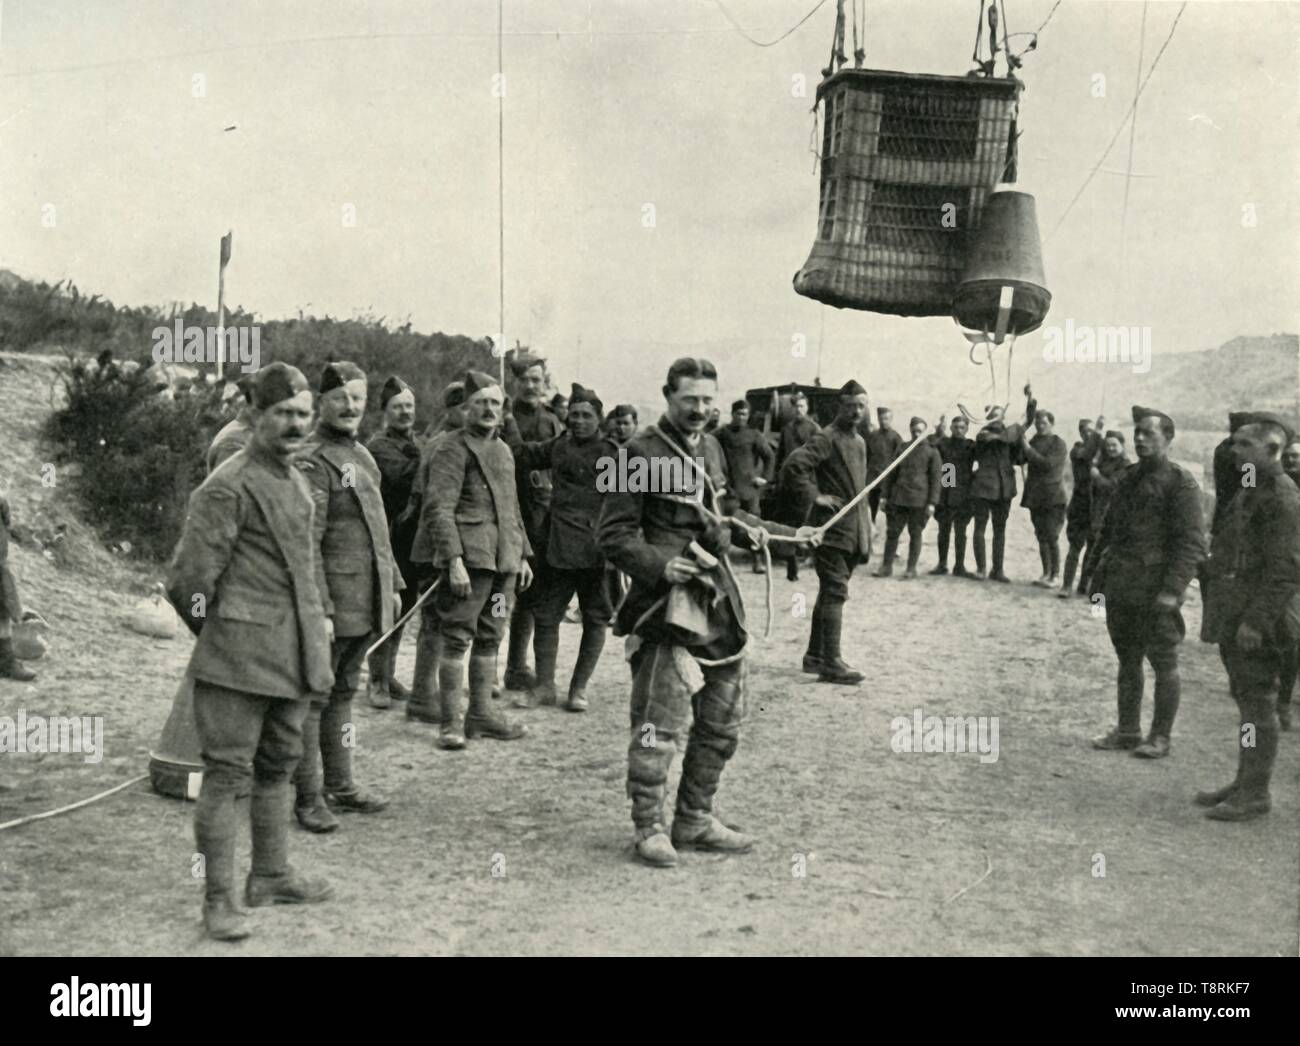 "'Royal Field Artillery Kite Balloons Were The Eyes of Our Guns in France', (1919). Scene from the First World War, 1914-1919: 'The observers were highly trained men, and when their balloons were shelled or attacked by enemy aircraft they were forced to make rapid descents in parachutes. The observers were always connected with their parachutes.' From ""The History of the Great European War: its causes and effects"", Vol. VIII, by W. Stanley Macbean Knight. [Caxton Pulishing Company, Limited, London, 1919] - Stock Image"